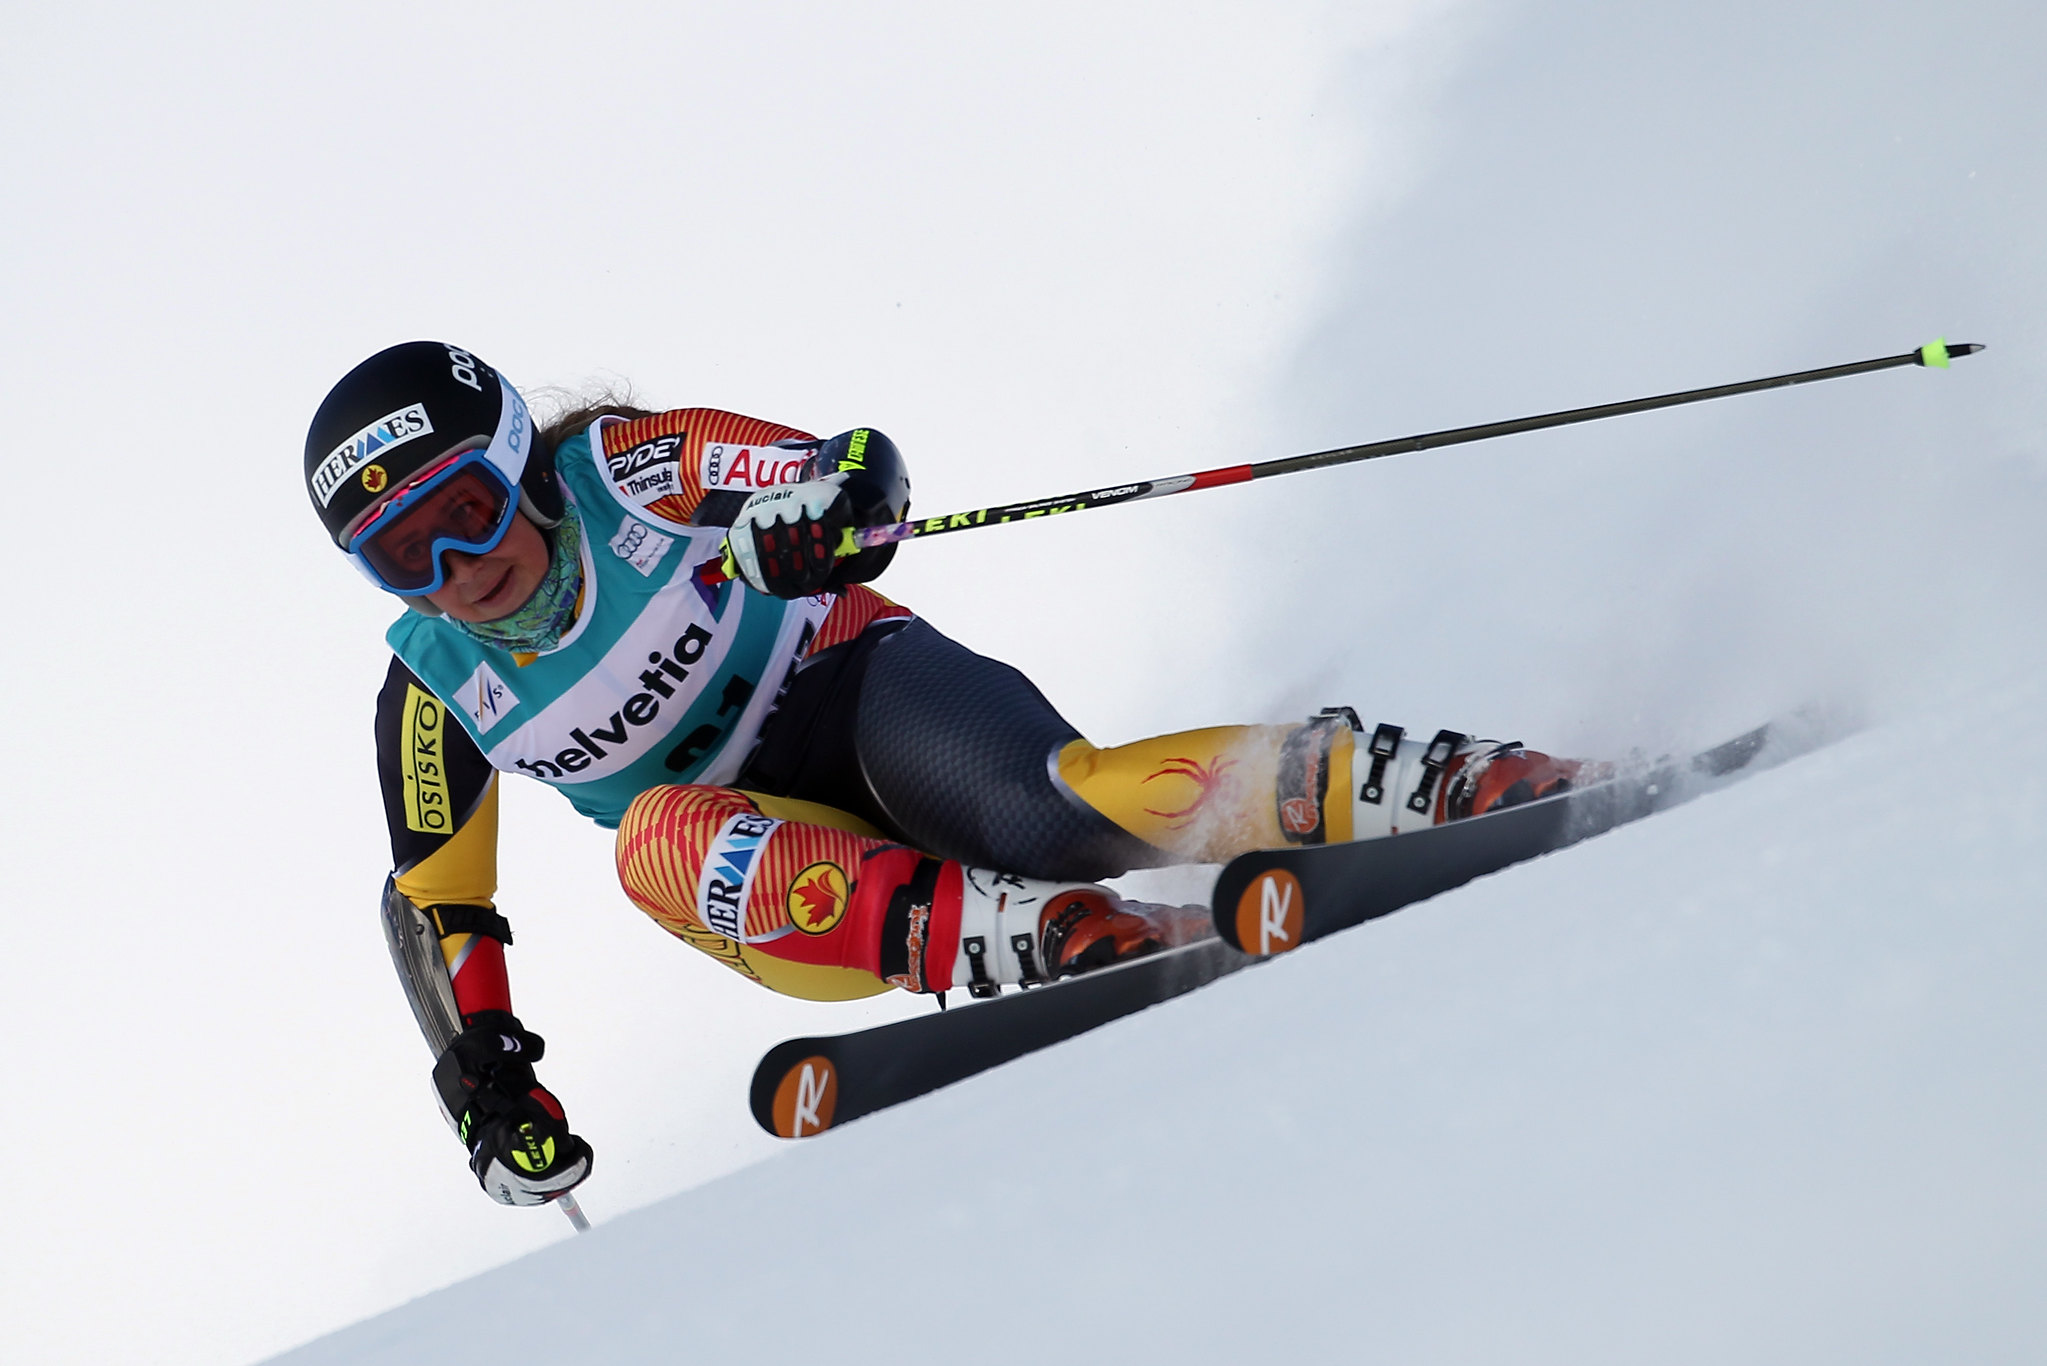 Marie-Pier Préfontaine races World Cup giant slalom in St. Moritz, Switzerland.